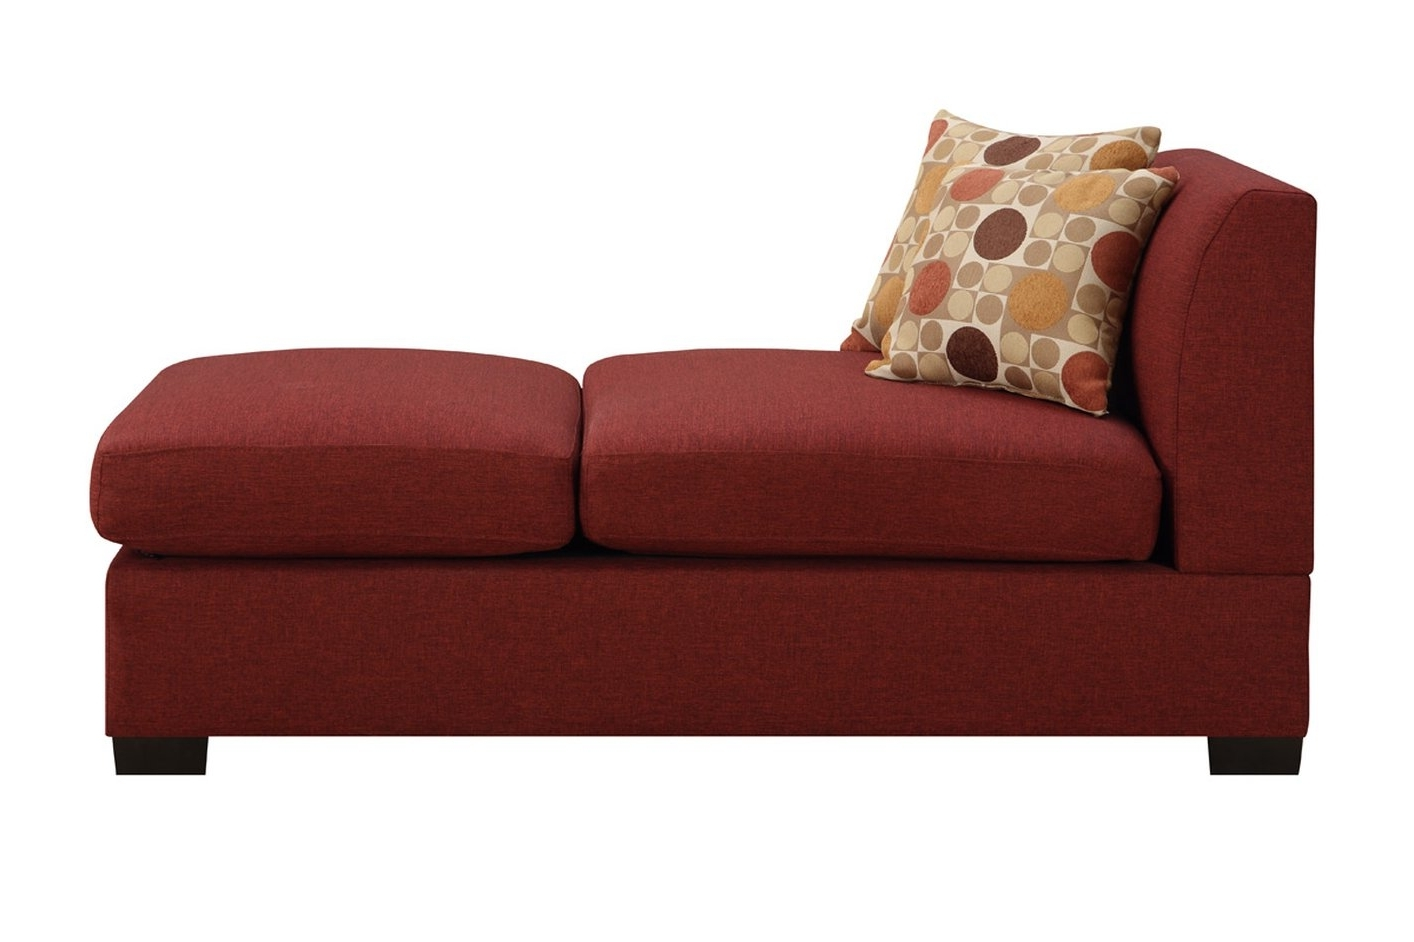 Red Fabric Chaise Lounge – Steal A Sofa Furniture Outlet Los In Most Popular Fabric Chaise Lounges (View 14 of 15)